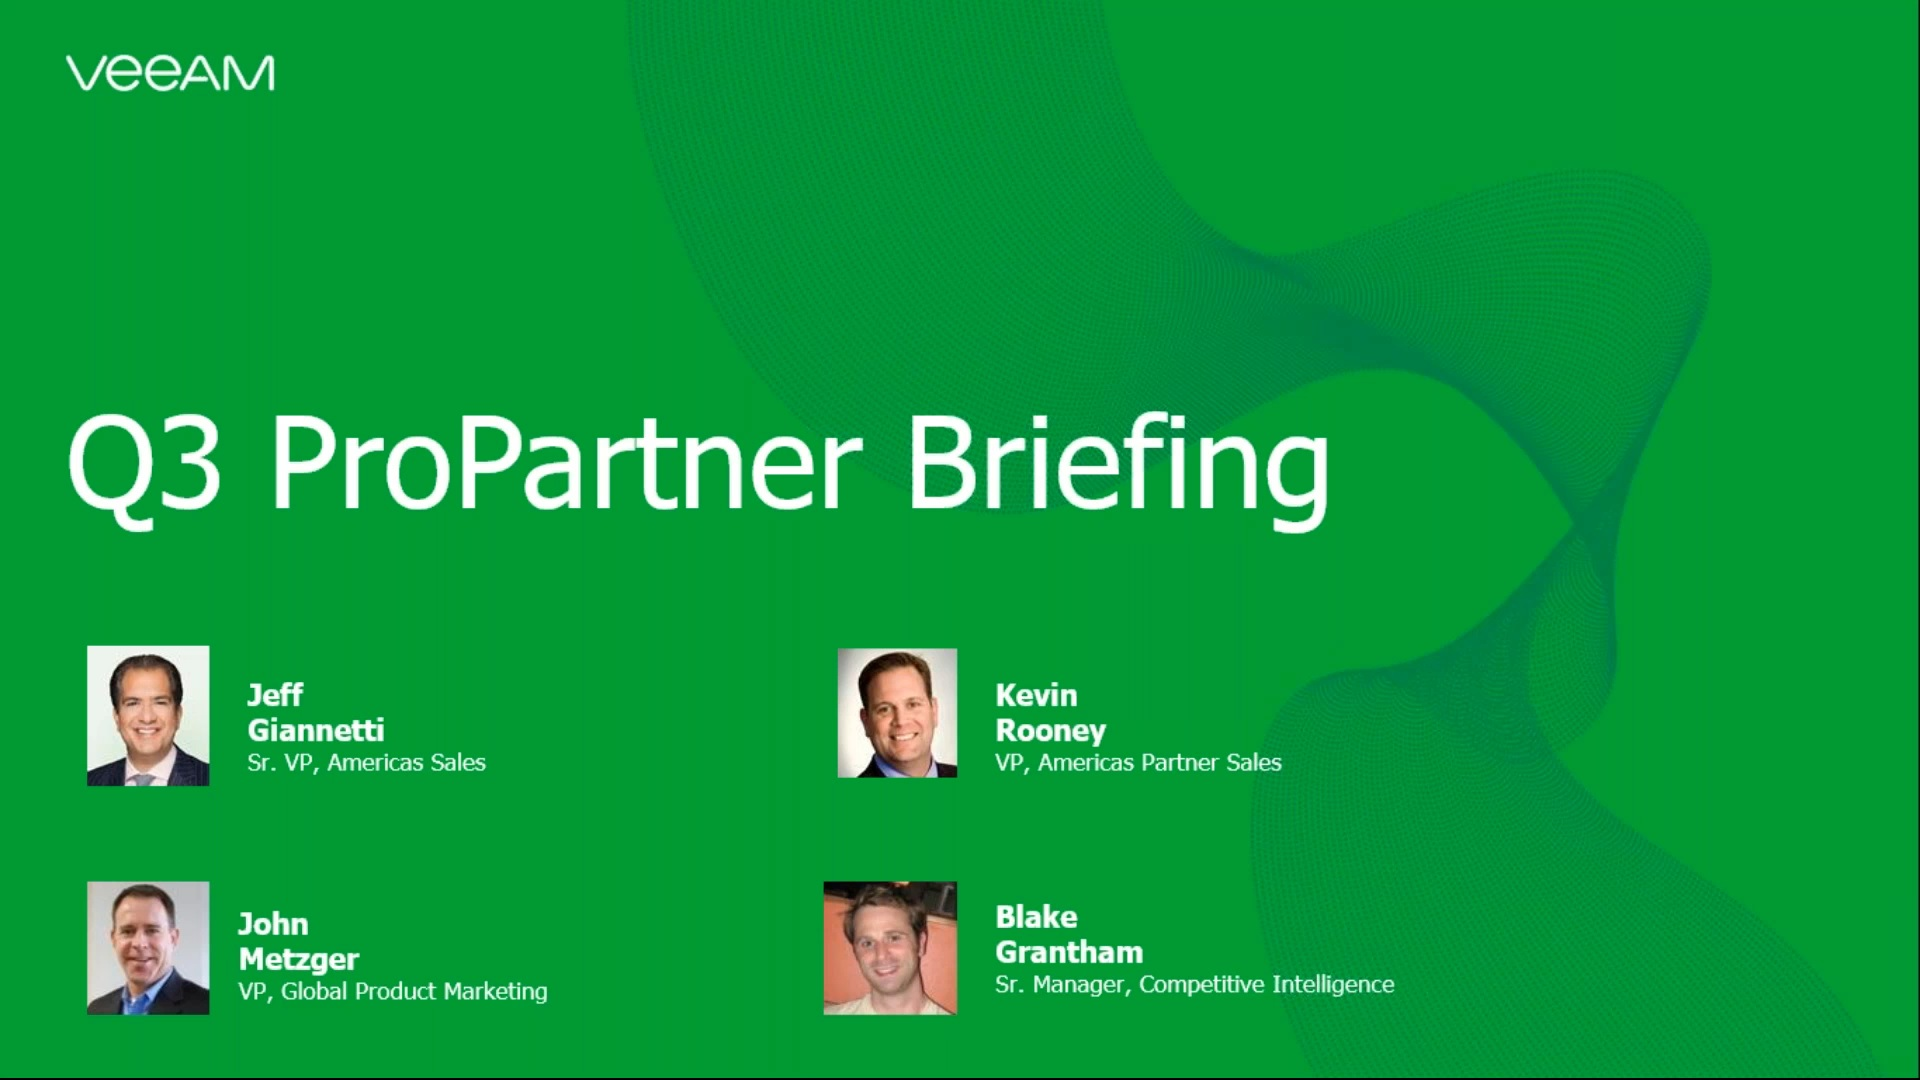 Q3 ProPartner briefing